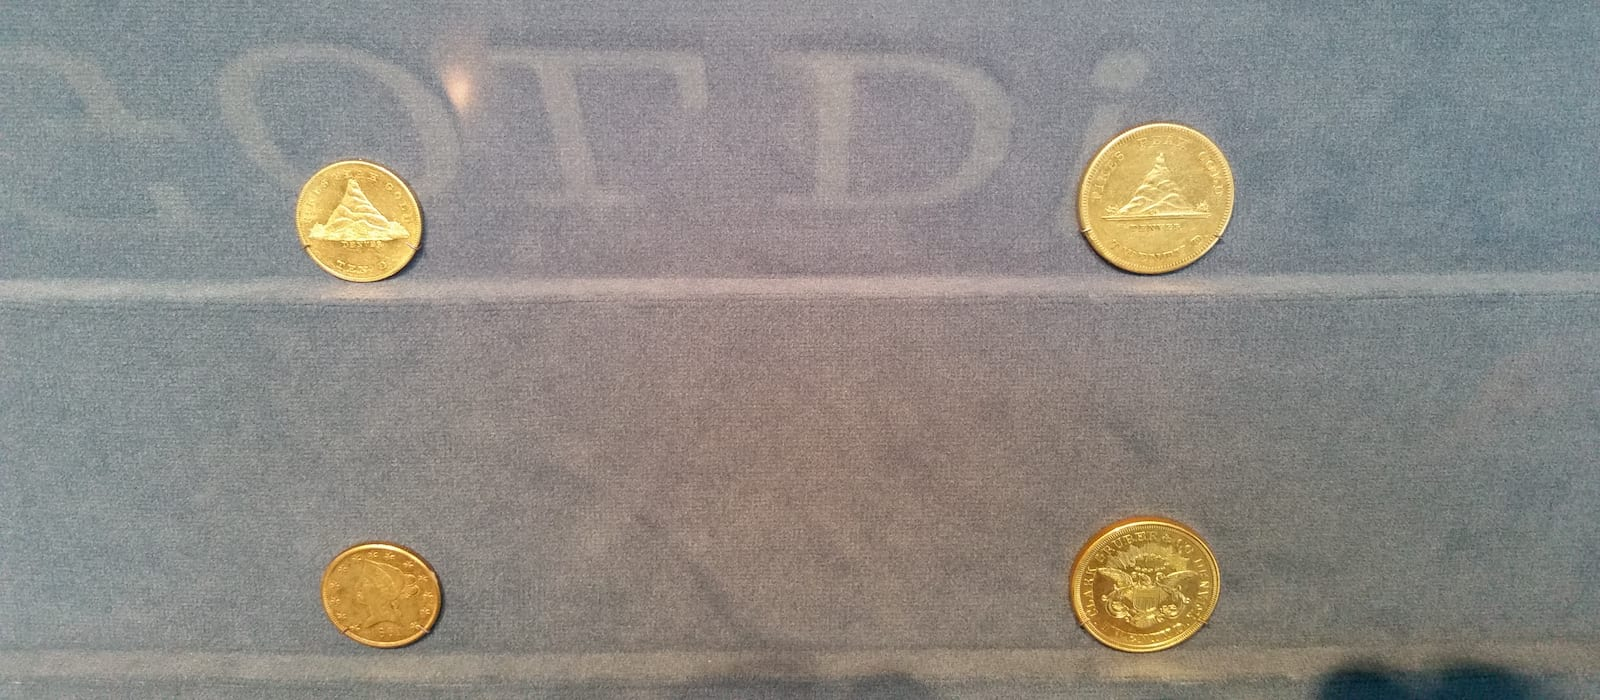 Clark, Gruber and Company Gold Coins on Display at History Colorado Center